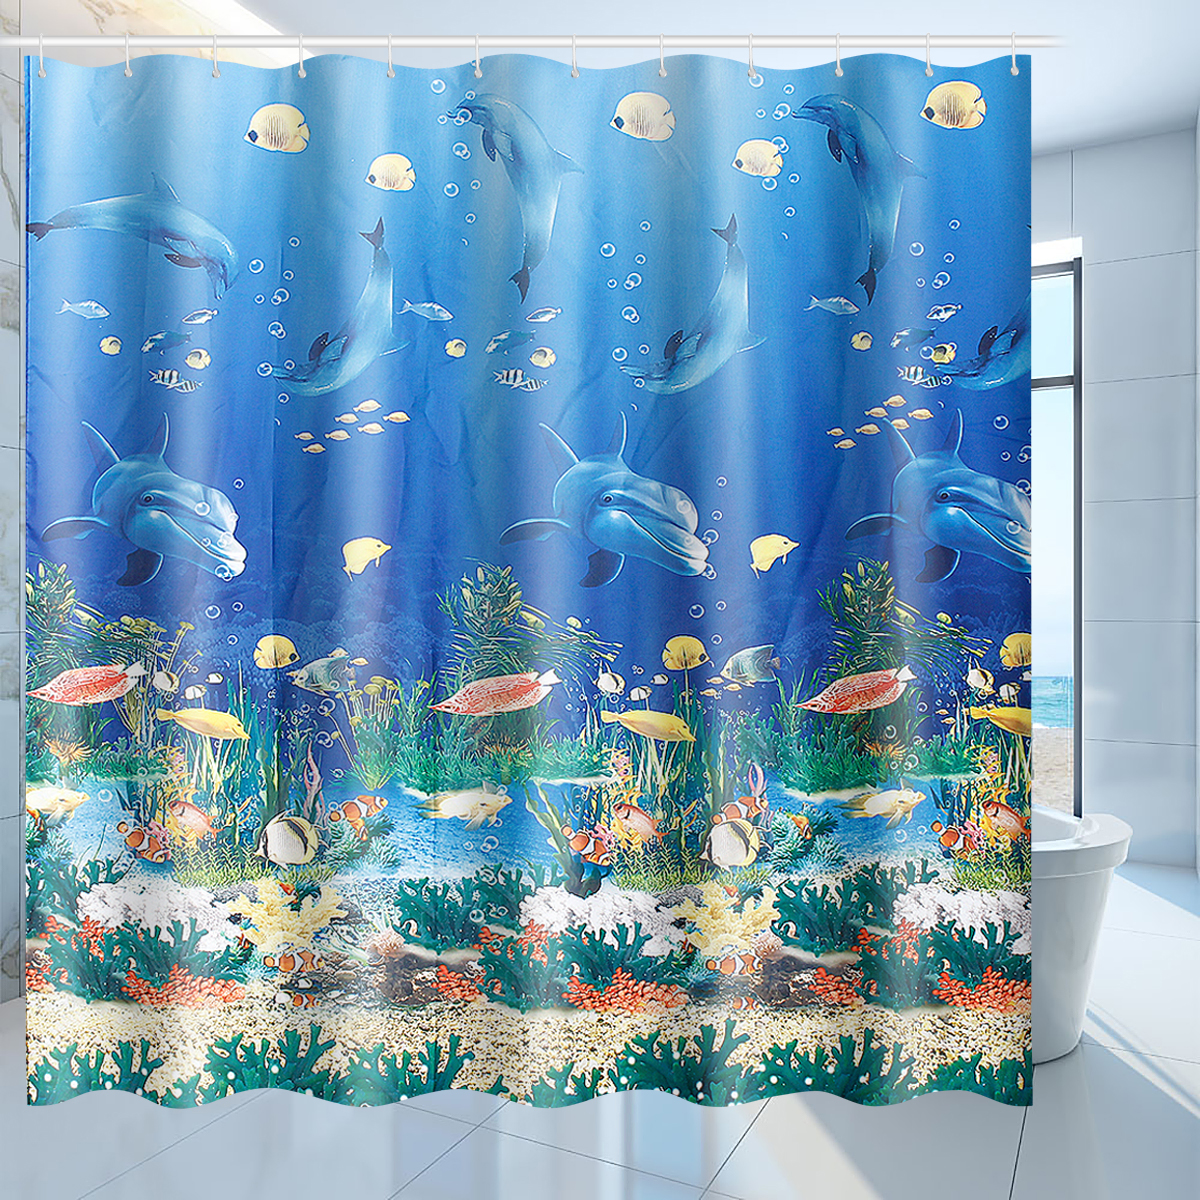 71 x71 dolphin shower curtain w 12 hooks waterproof polyester ocean themed bathroom decoration underwater fish coral reef and tropical fish shower